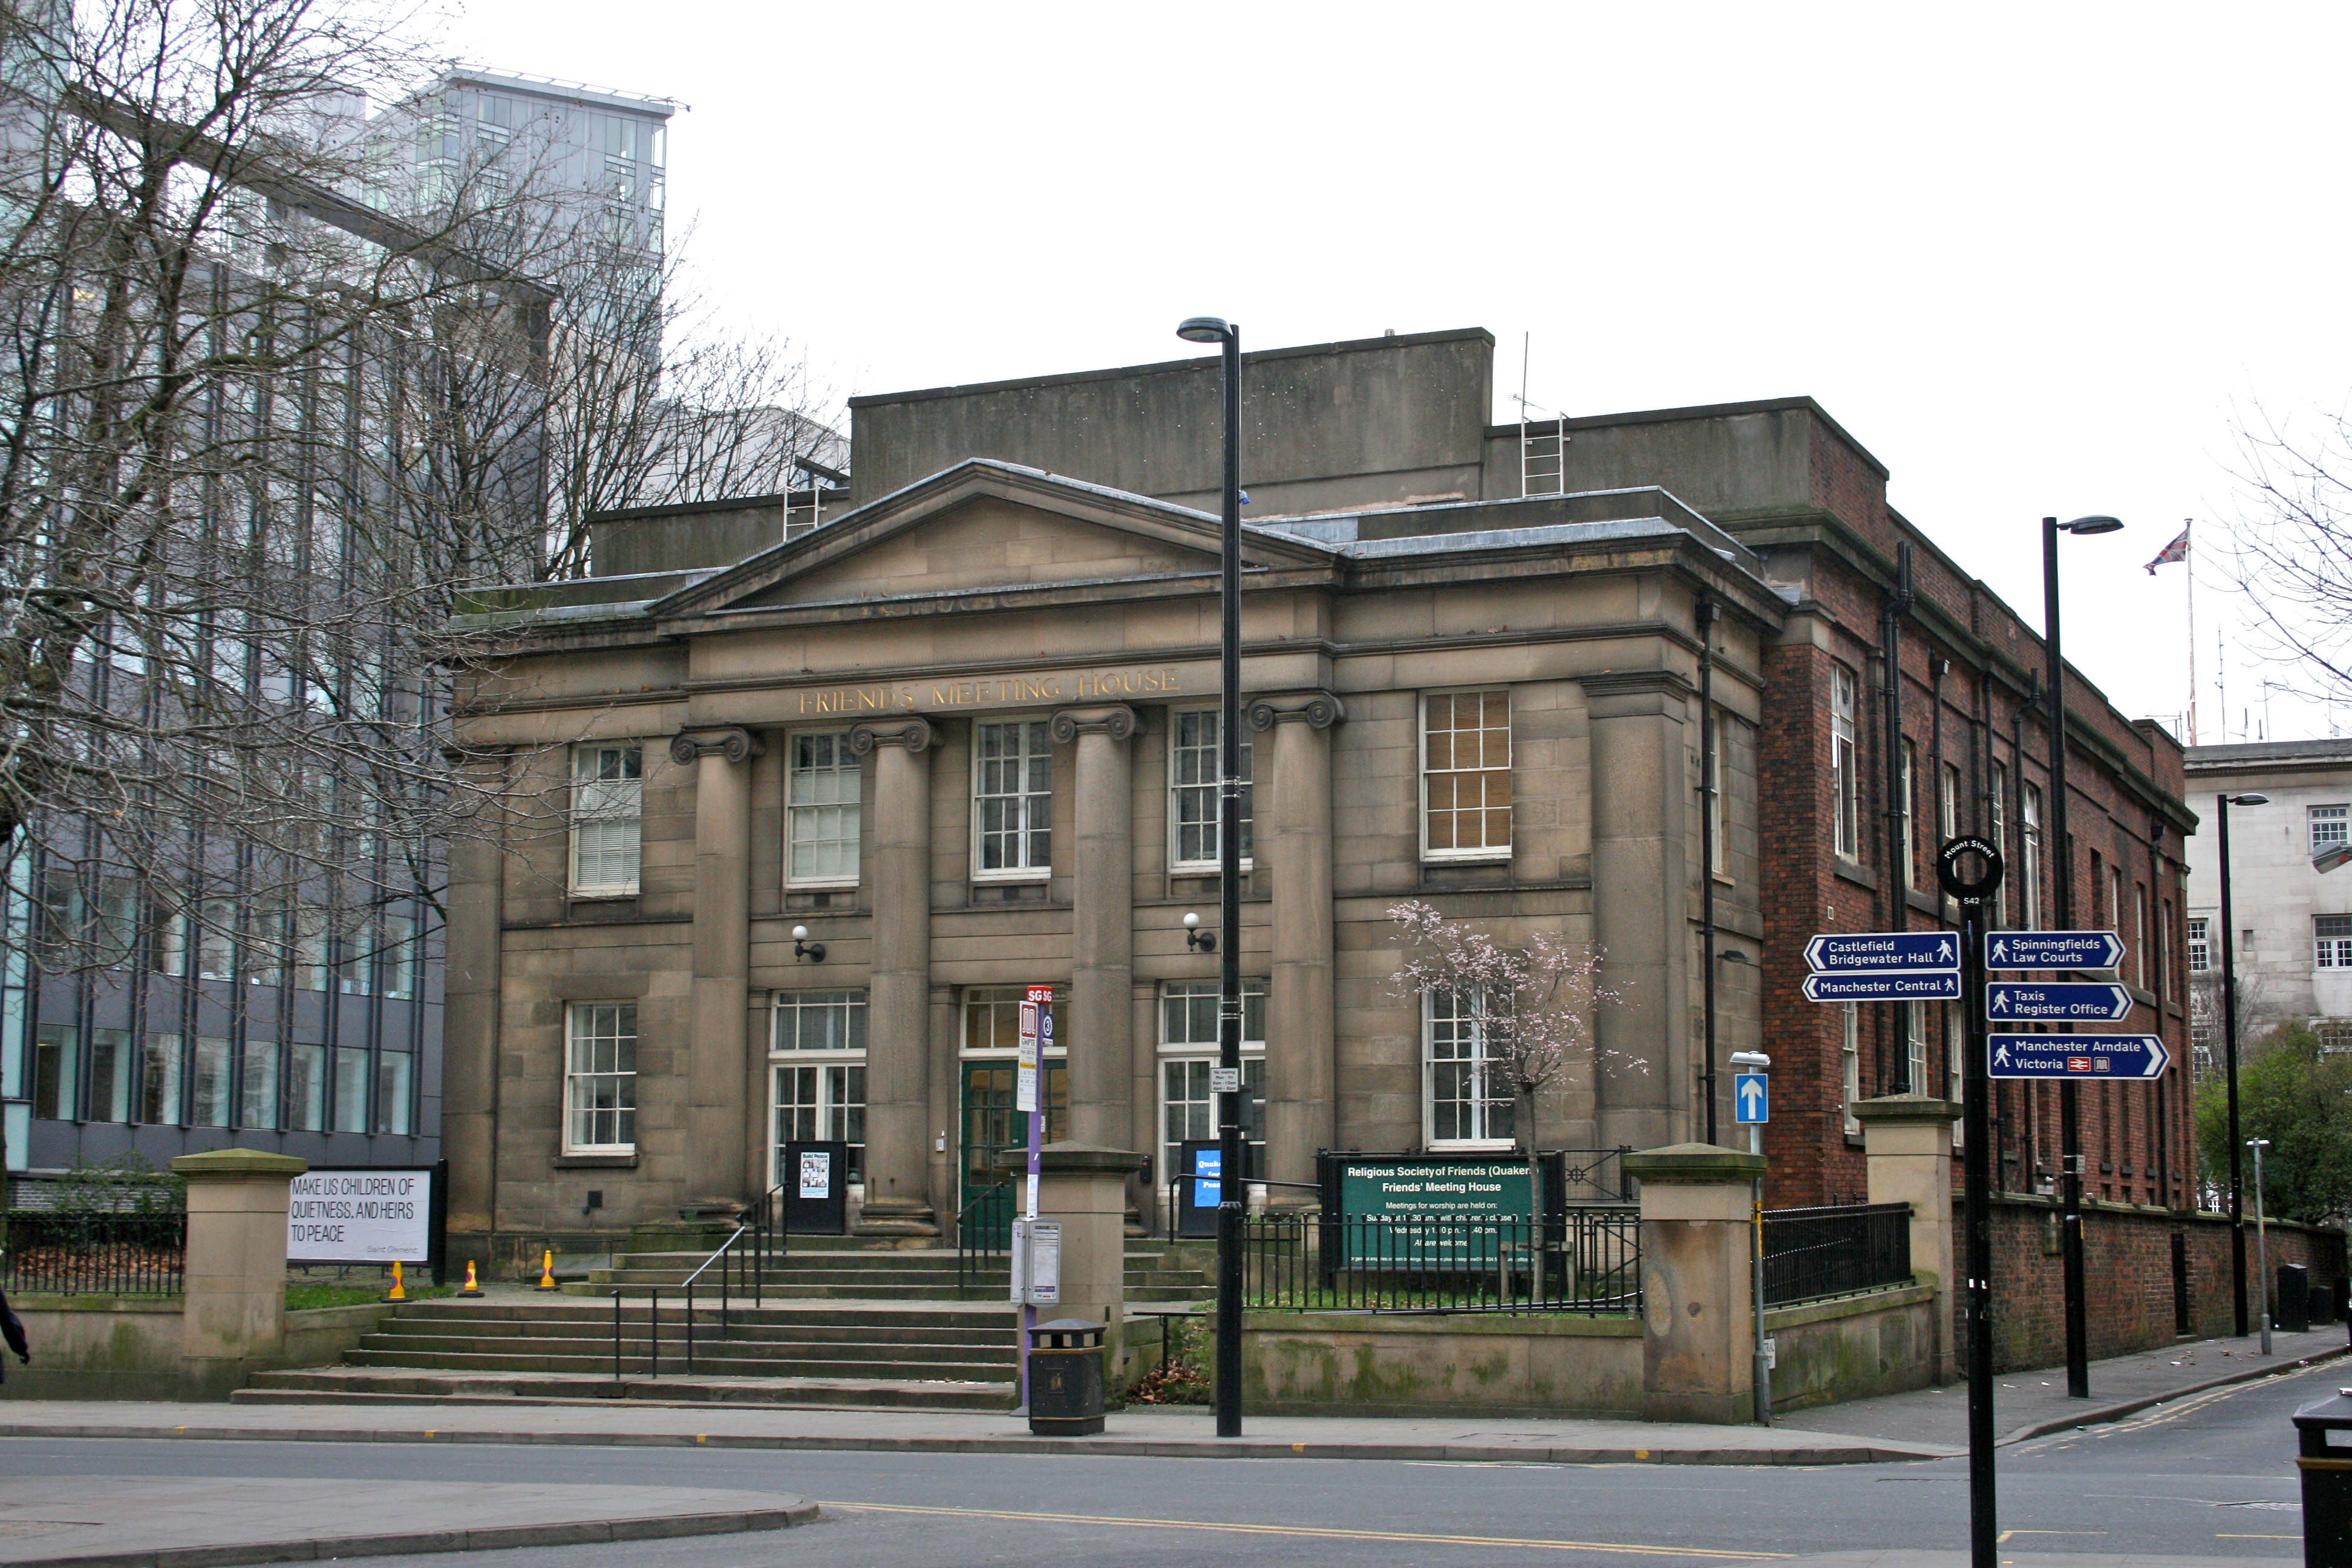 Image result for friends meeting house